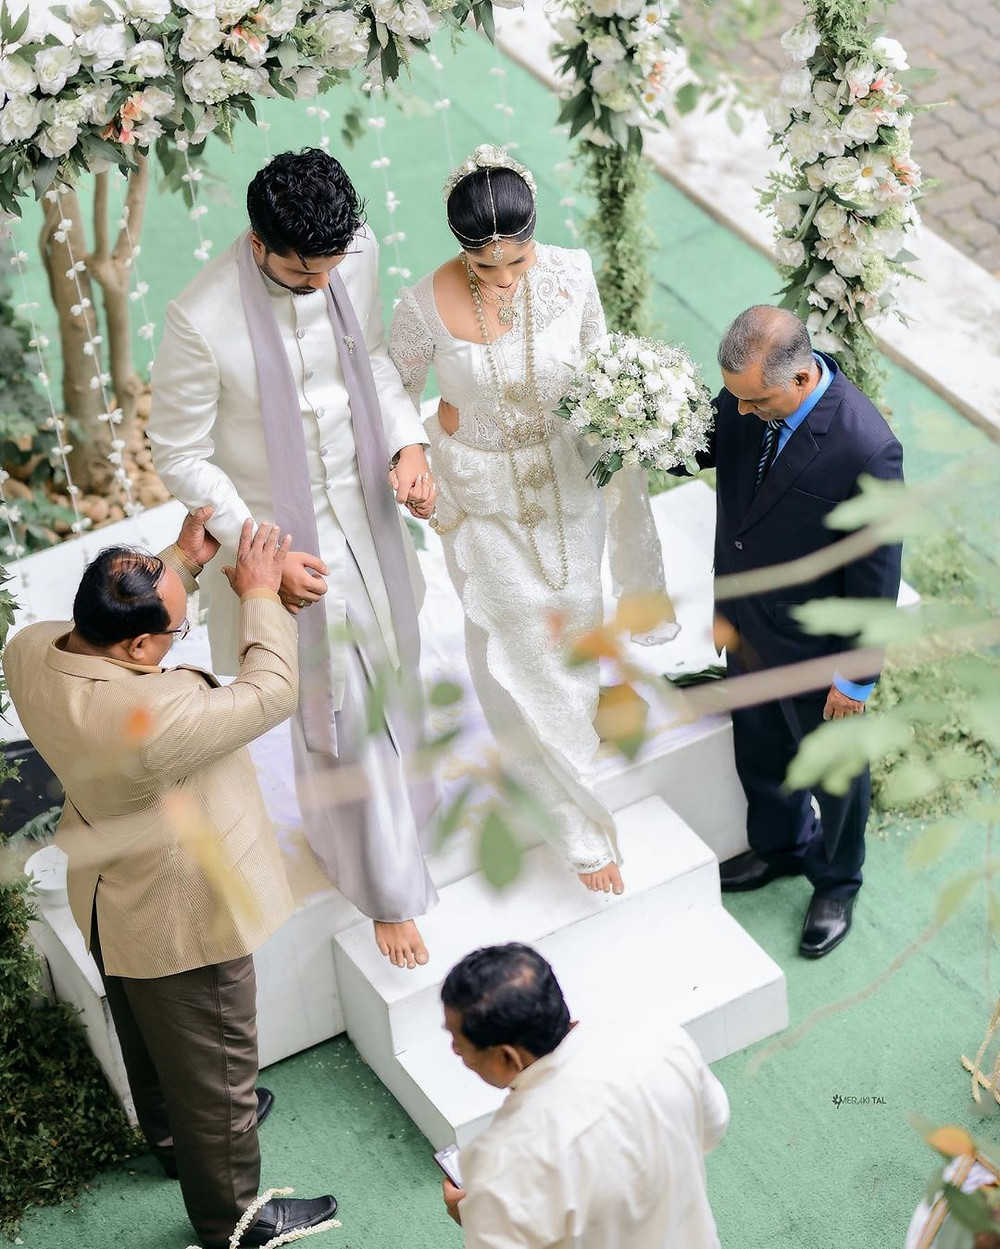 How To Plan Your Dream Wedding With These Perfect Wedding Checklist